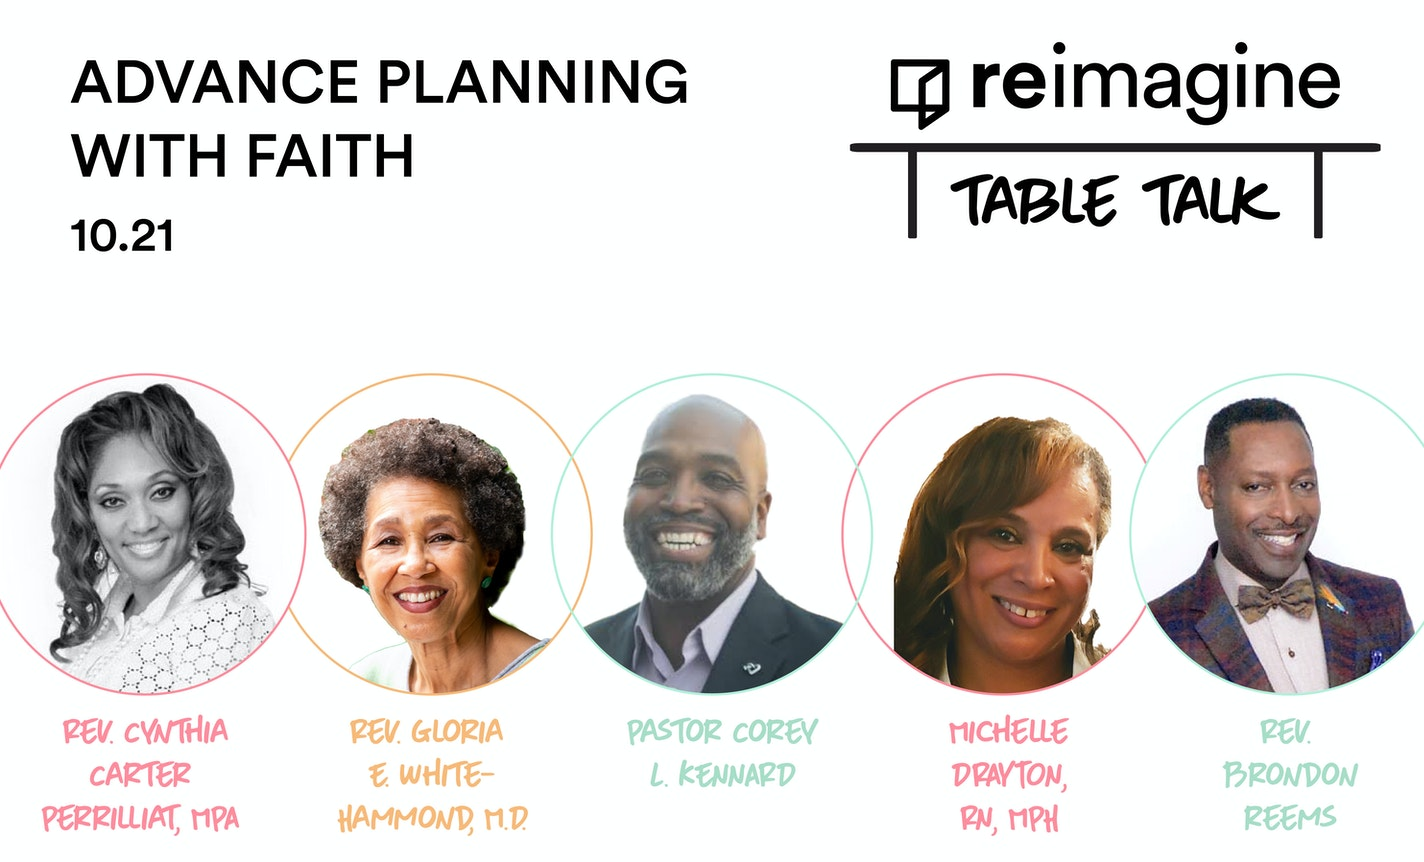 Taking Care Of Business: Advance Planning With Faith